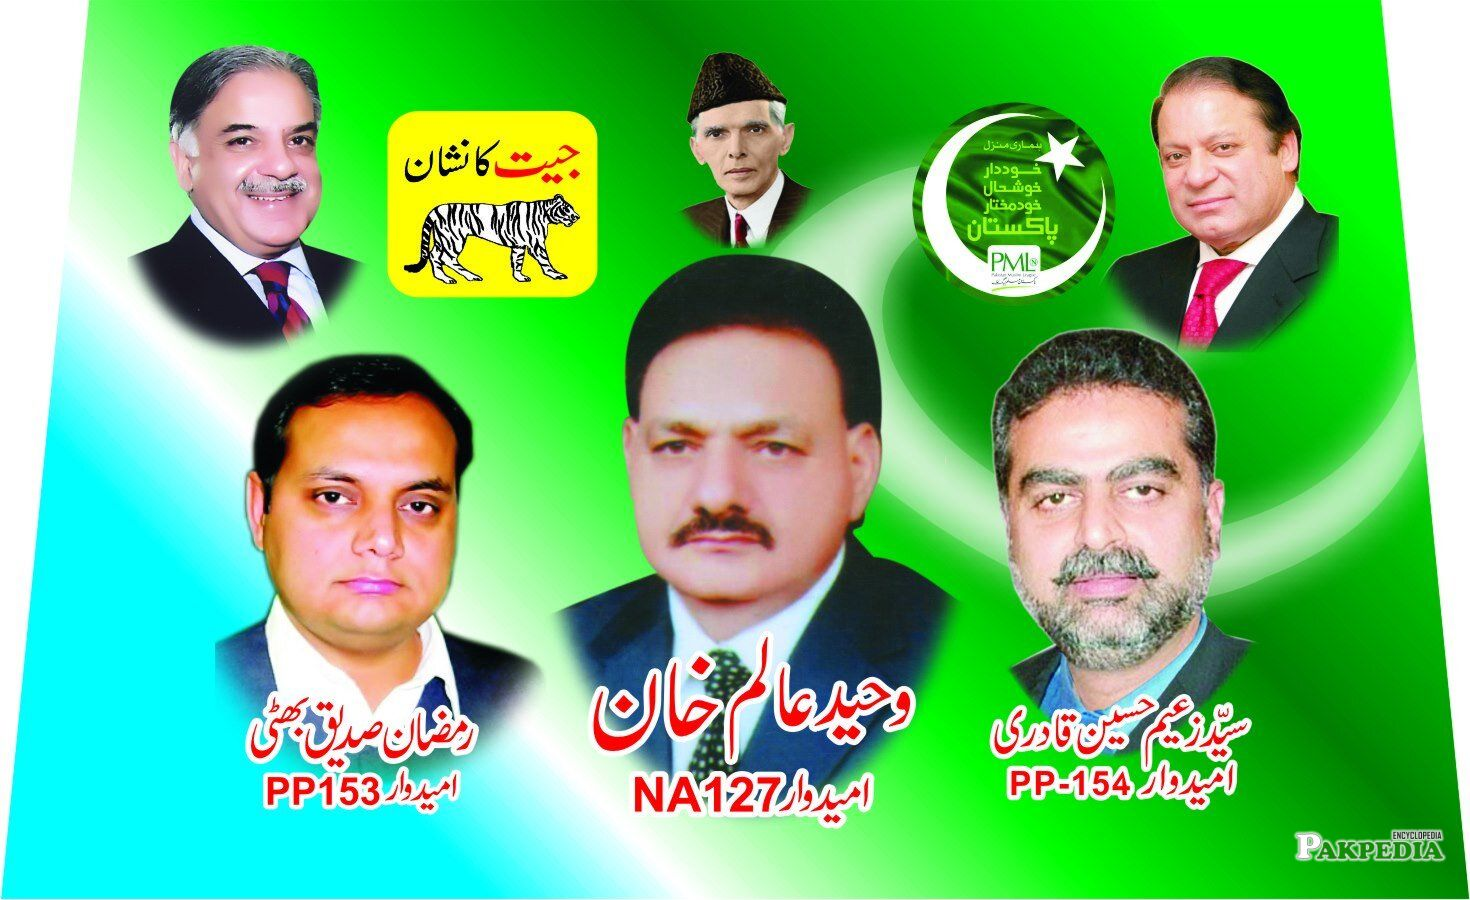 Waheed Alam contested the general elections from NA 125